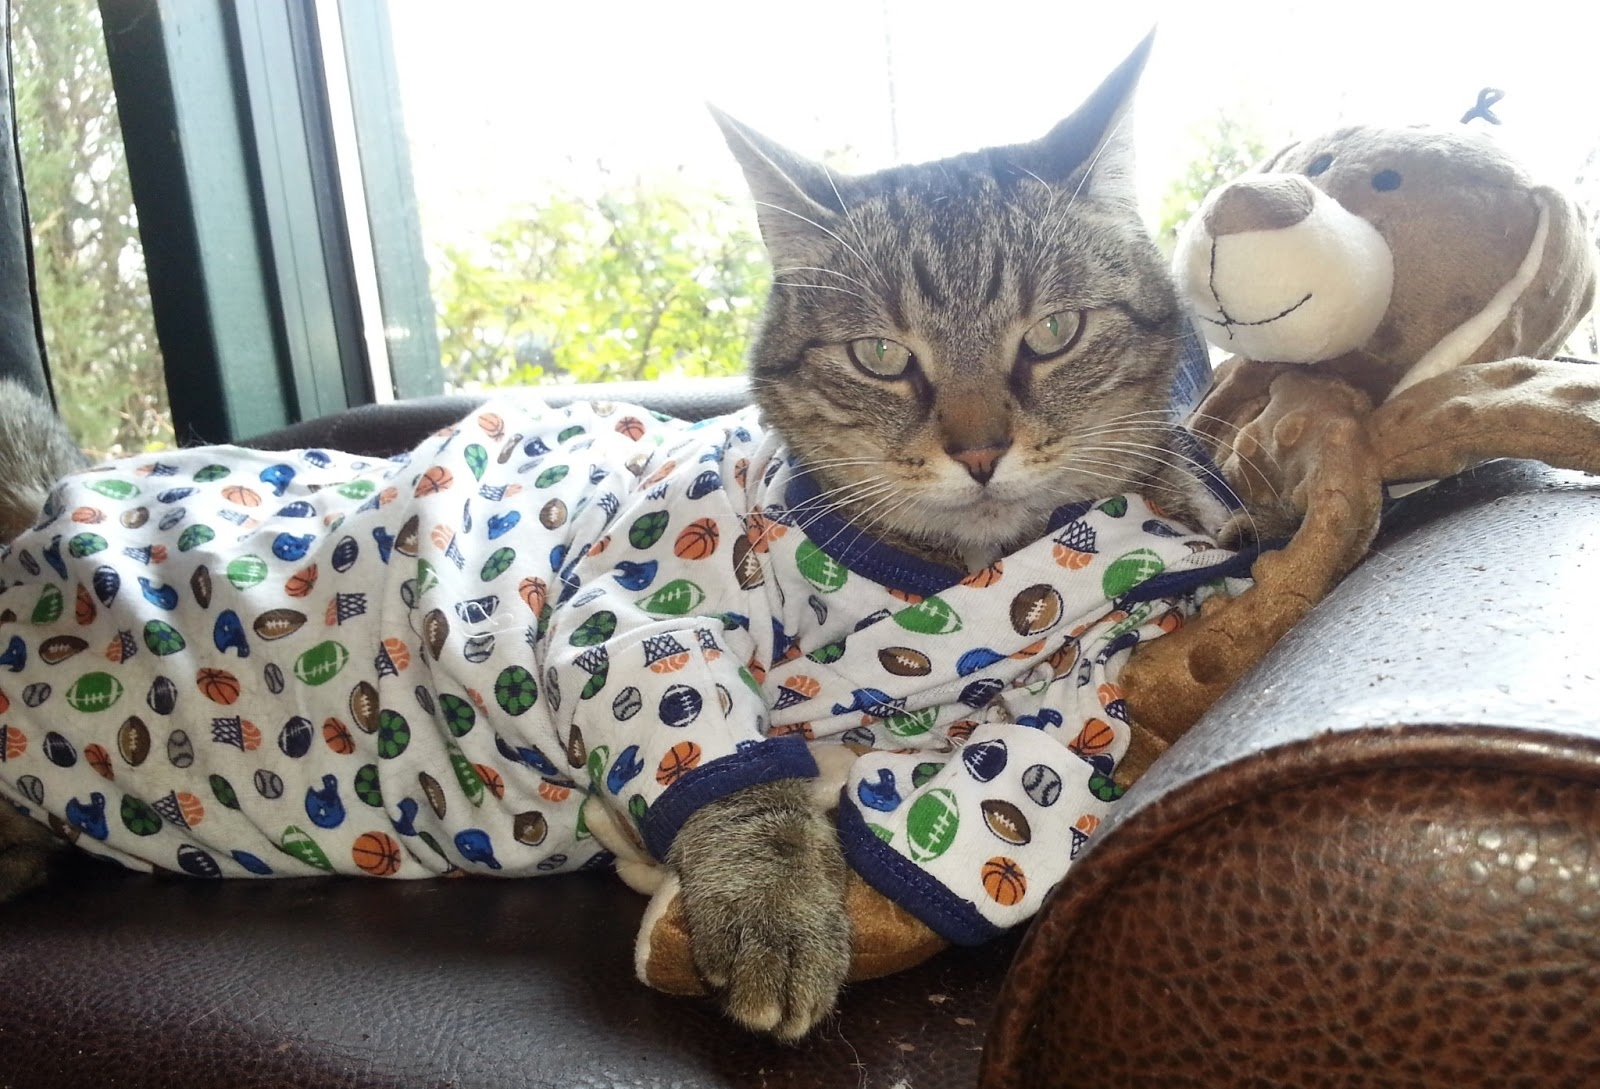 A cat in pajamas, looking a little grumpy